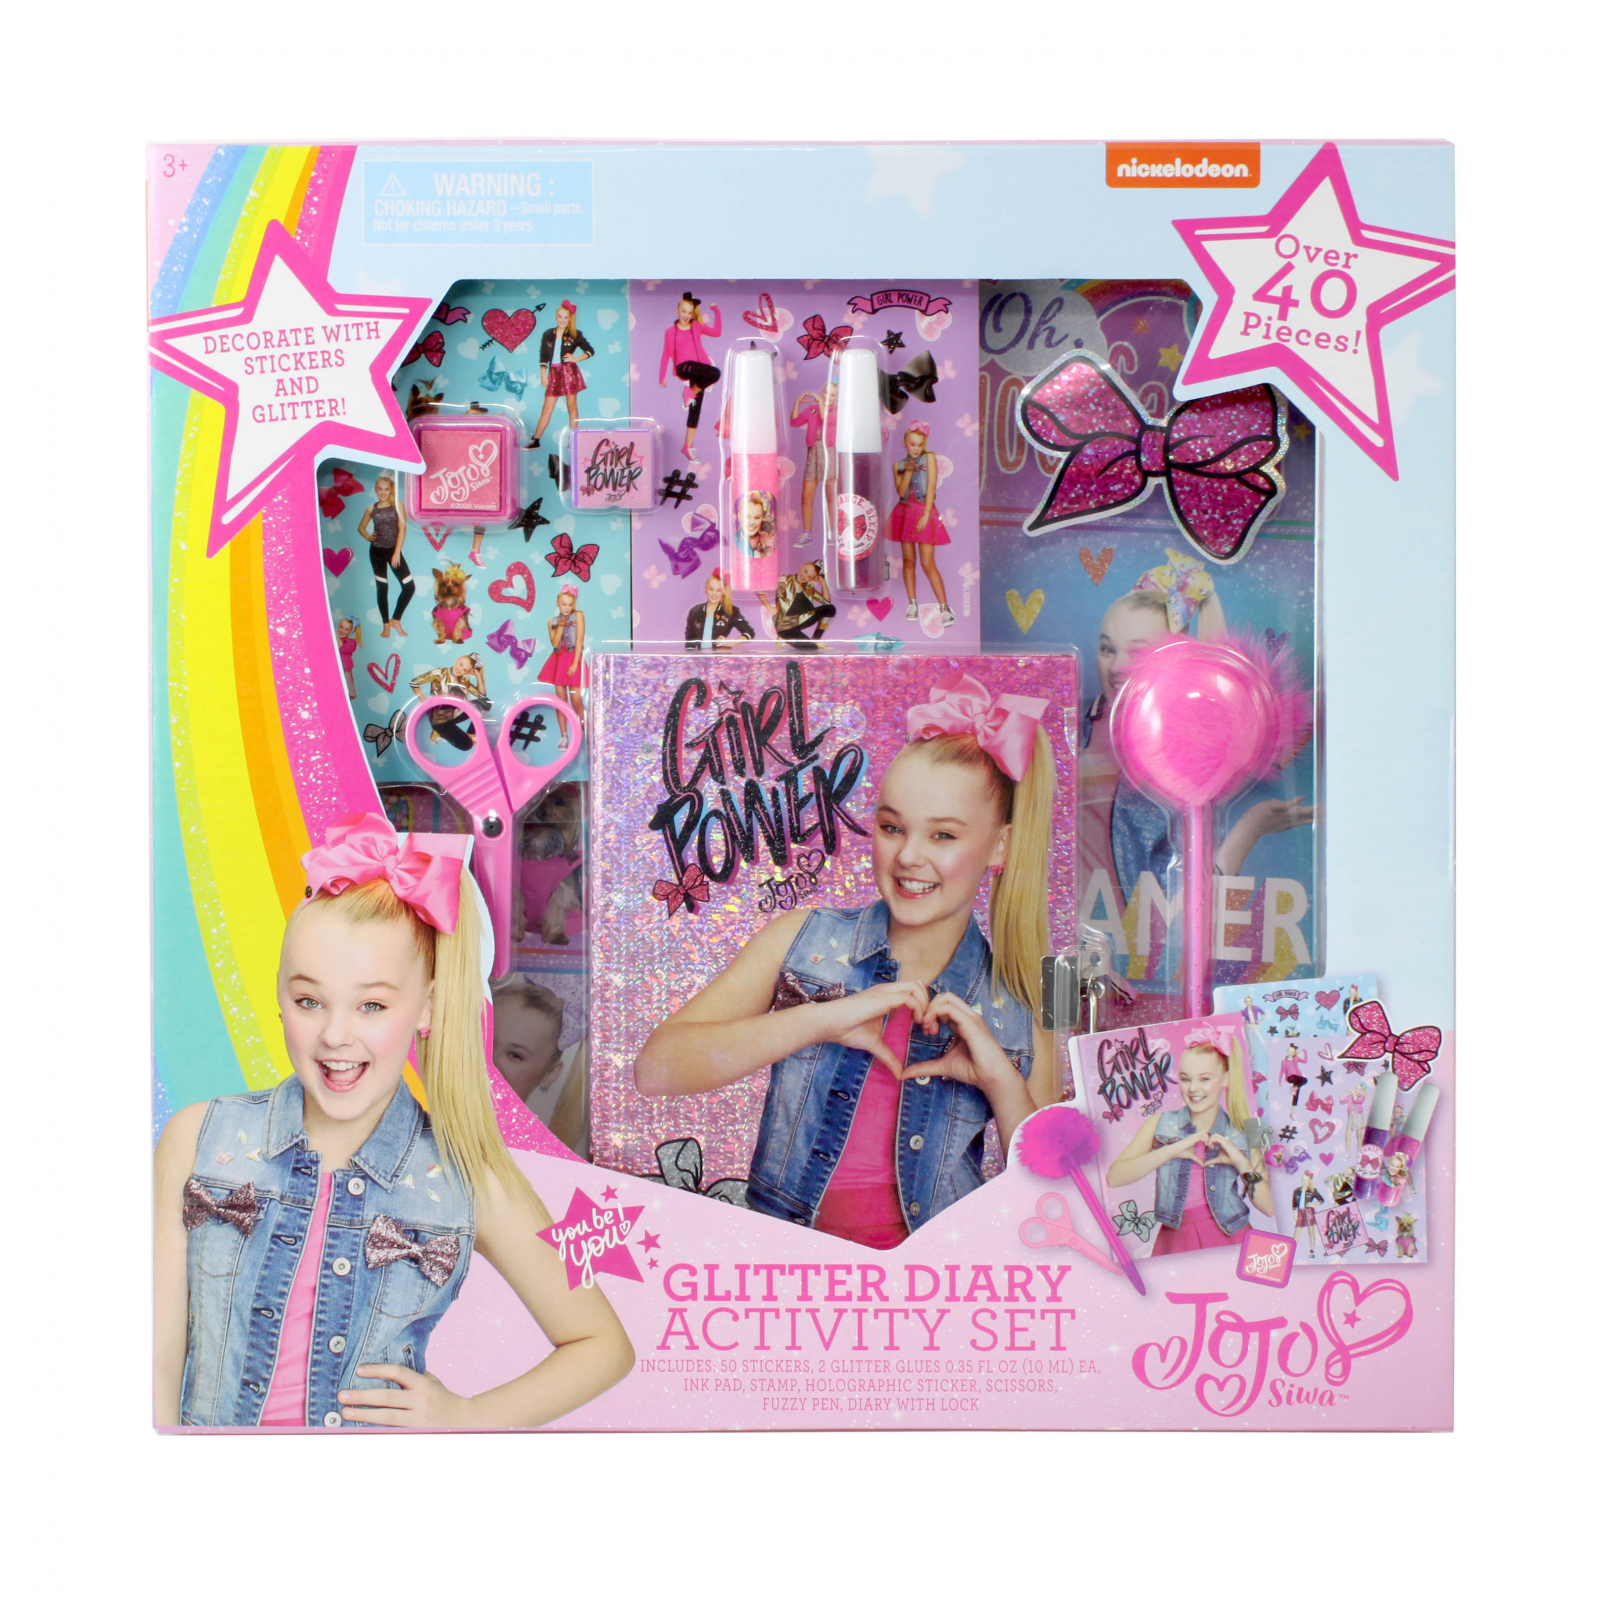 Nickelodeon JoJo Siwa Pink Glitter Diary Activity Stationery